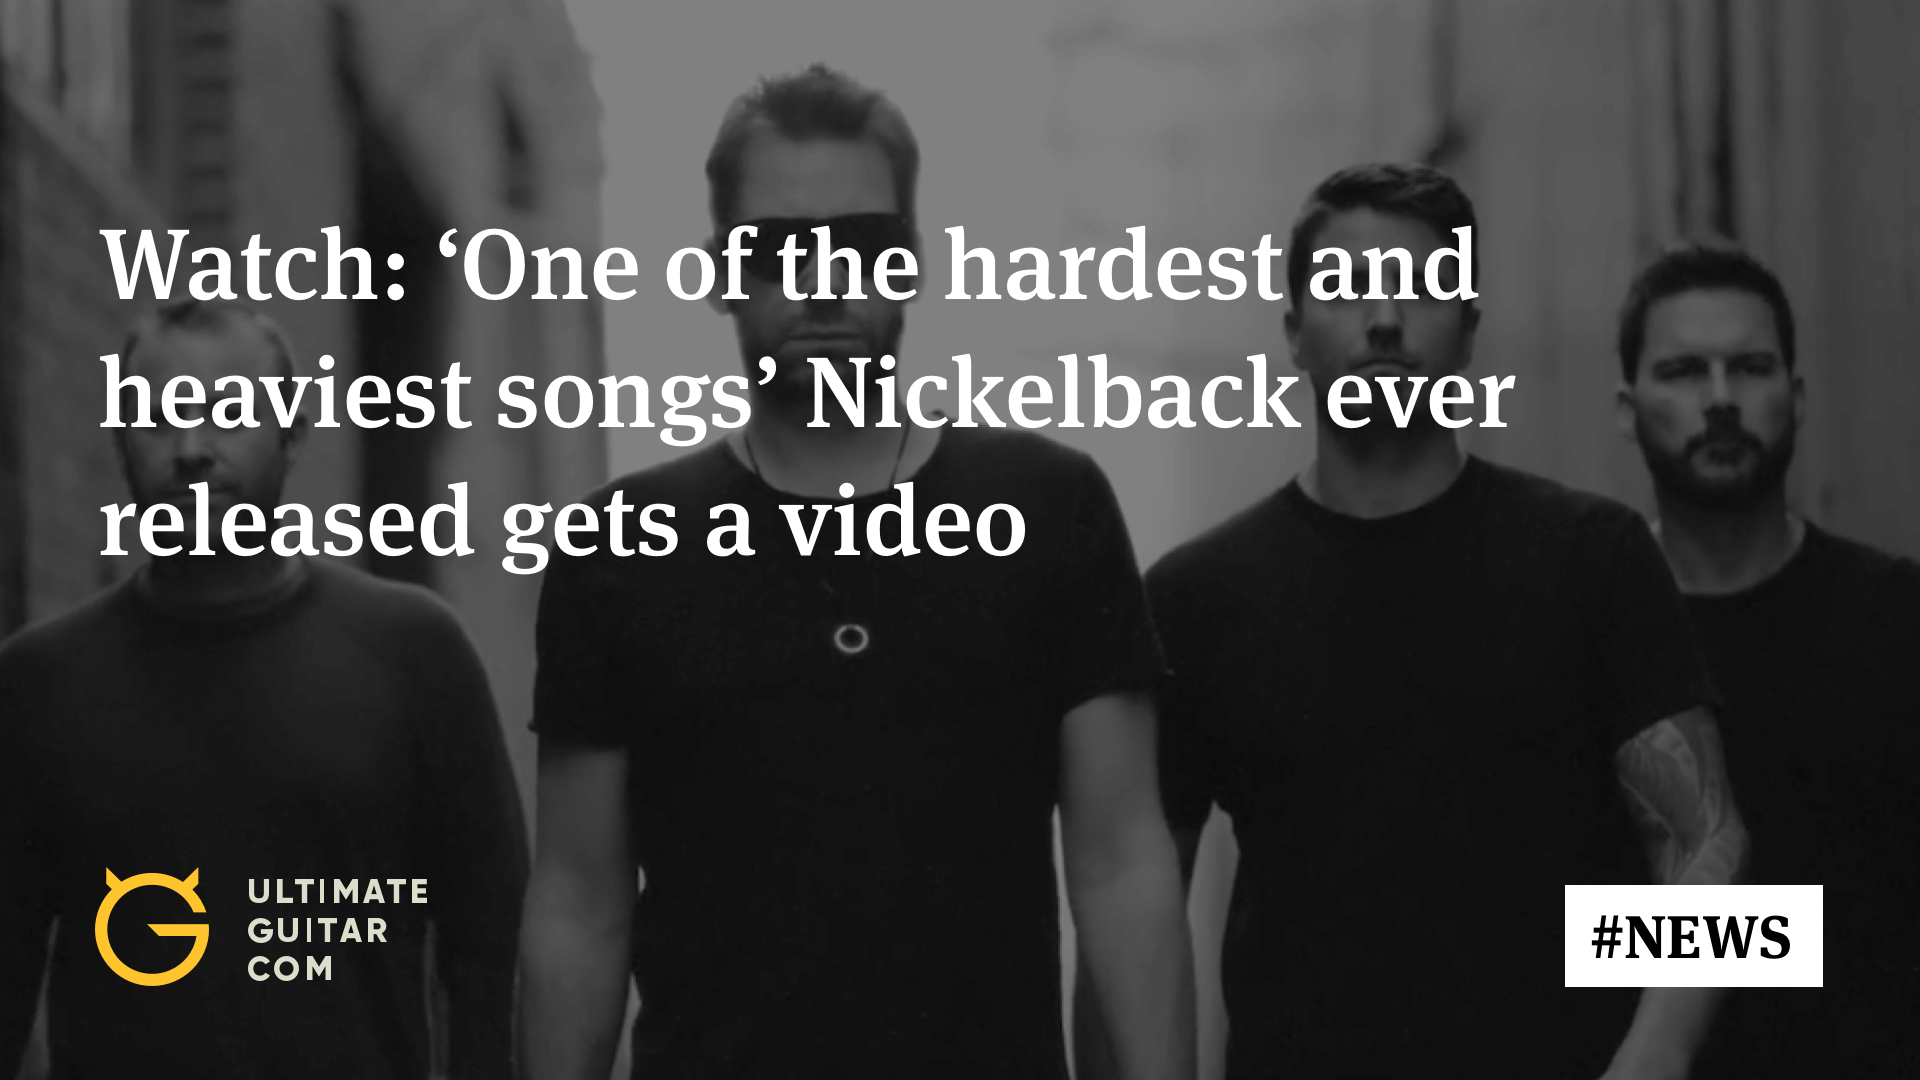 New Video: Nickelback Say This Is One of Their Heaviest